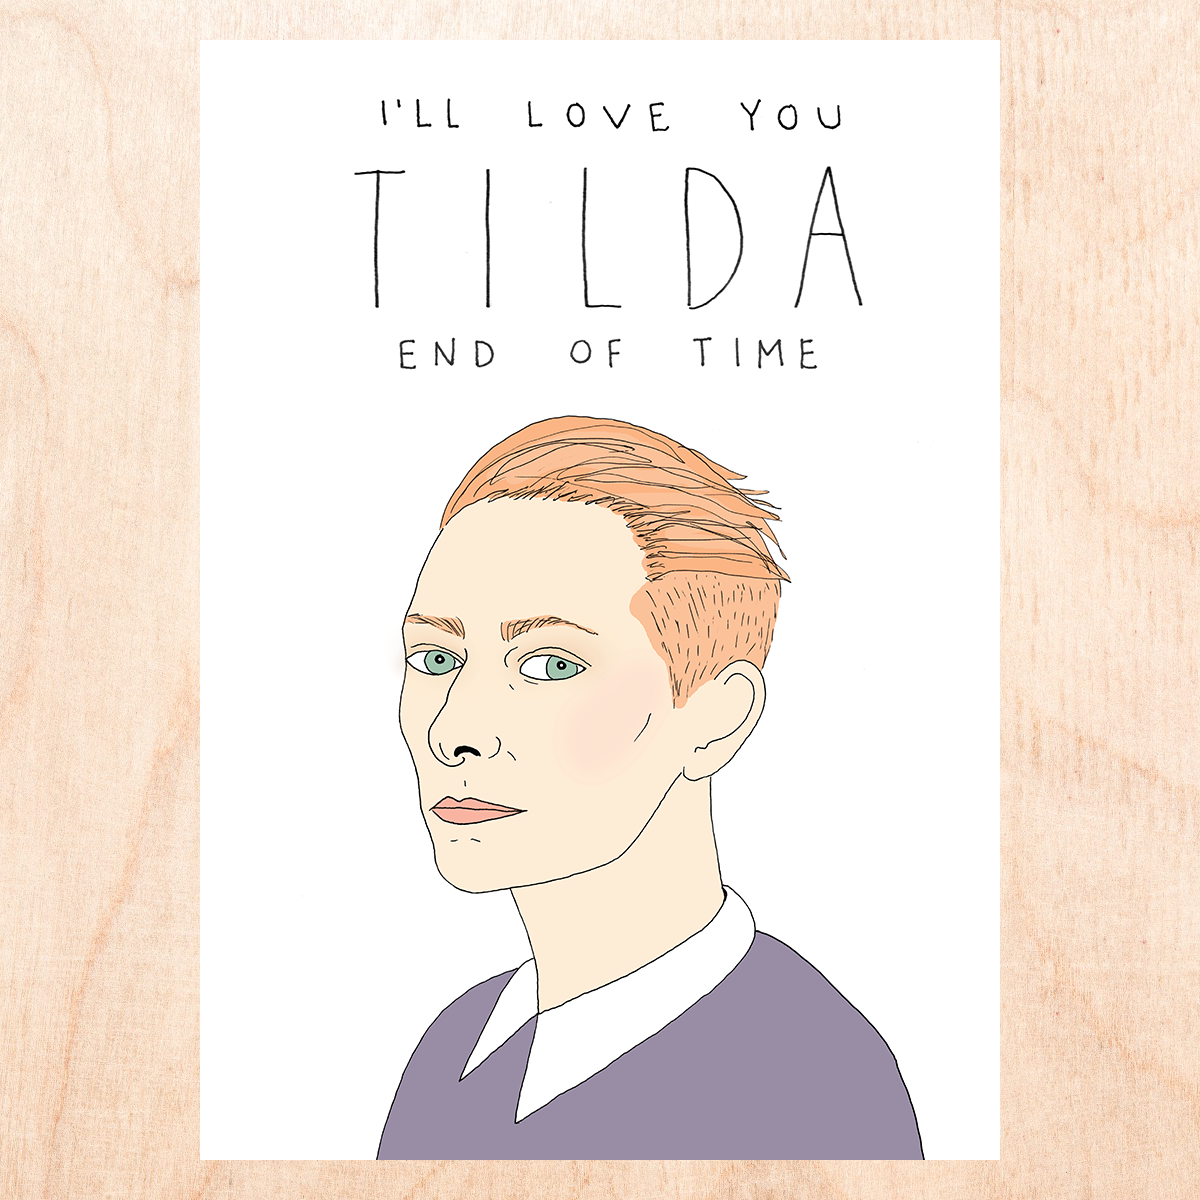 TILDA END OF TIME